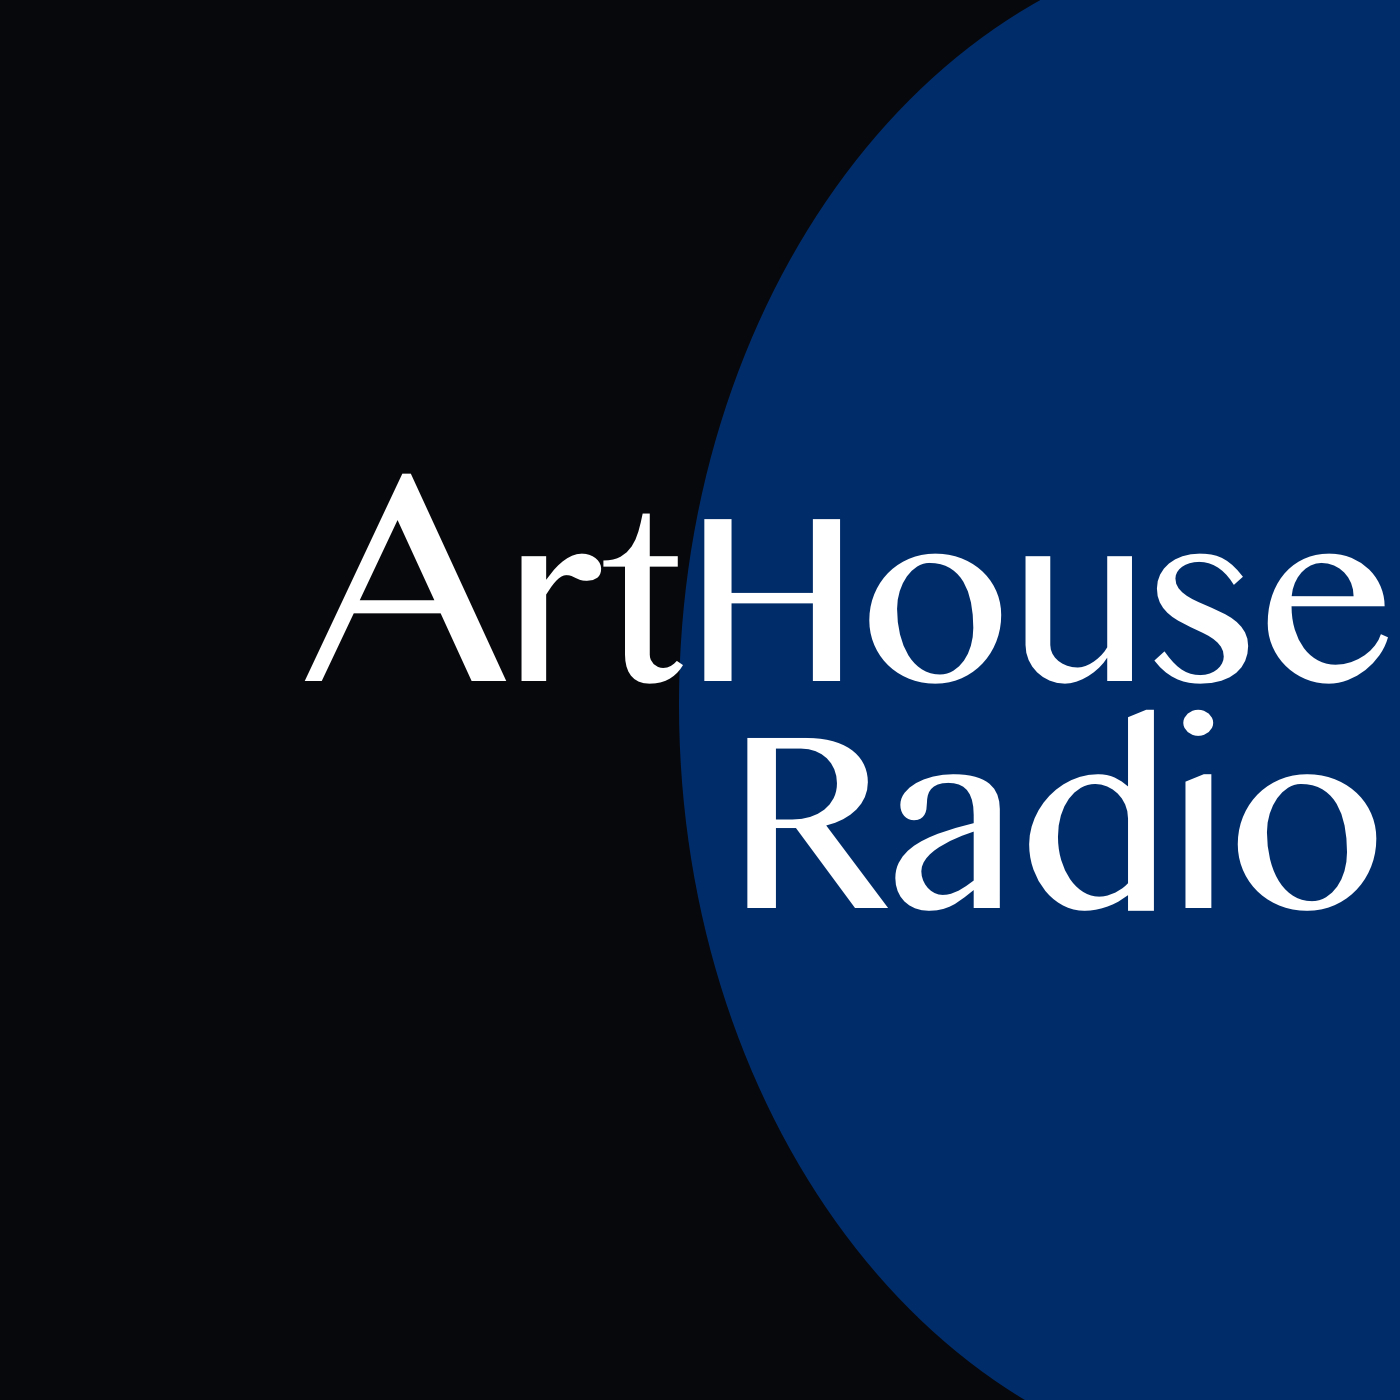 ArtHouse Radio Dark Logo 2017.jpg